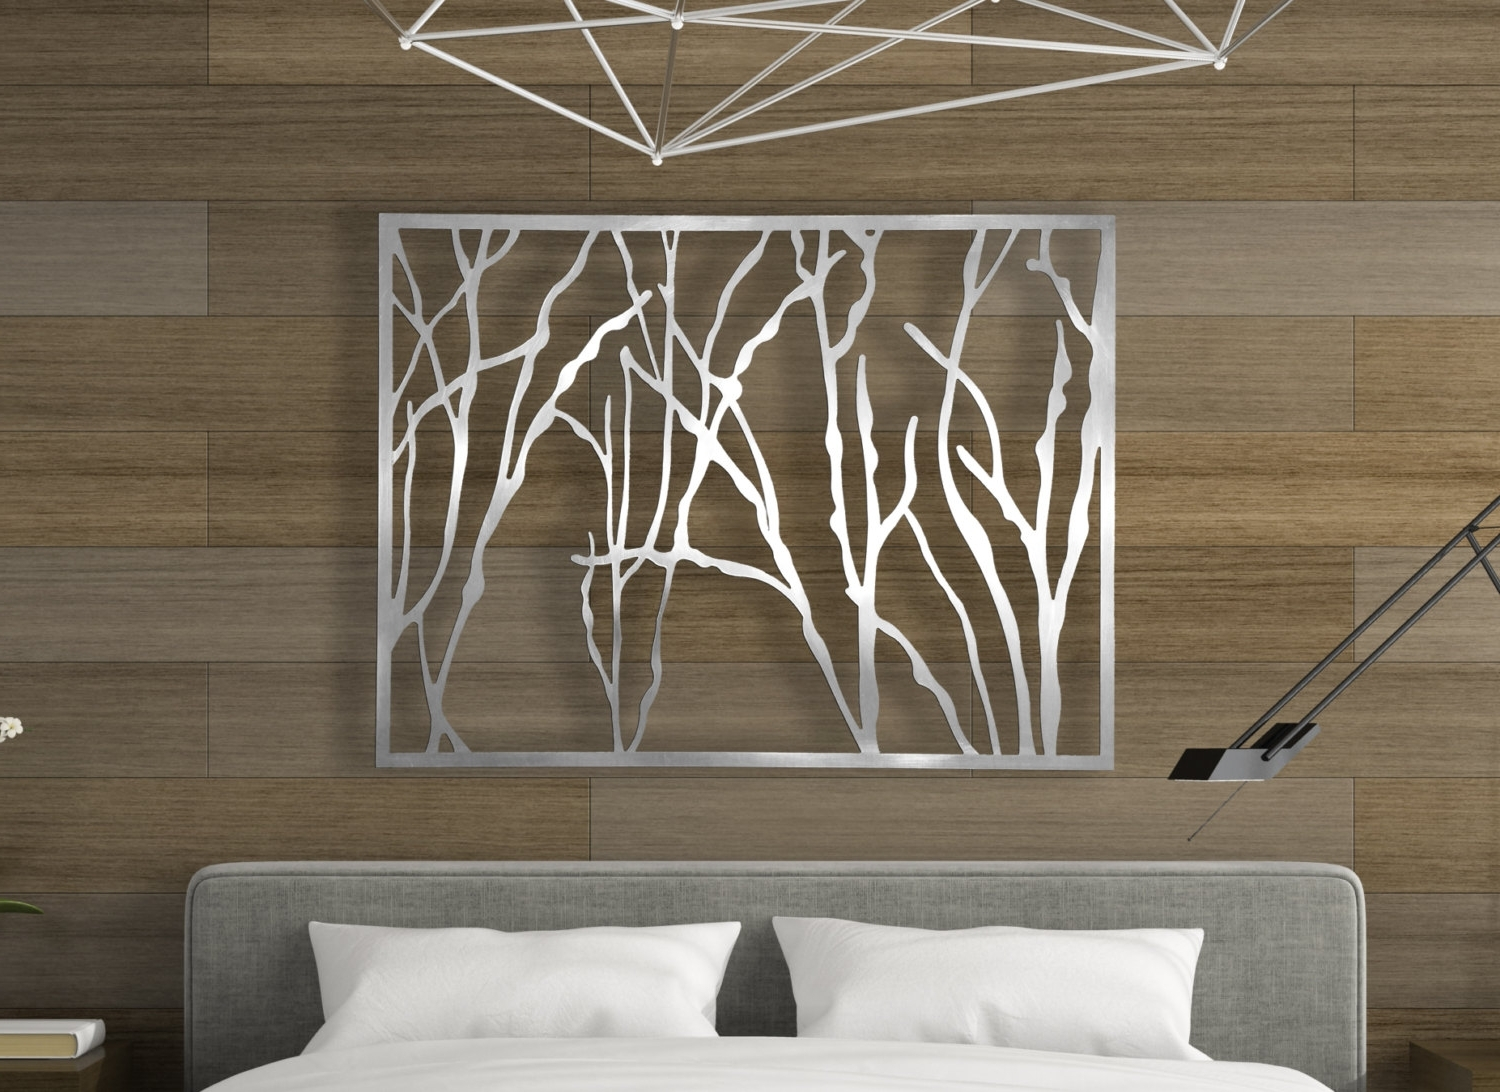 Most Up-to-Date Wall Art Panels within Popular Metal Wall Art Panels : Andrews Living Arts - Good Design